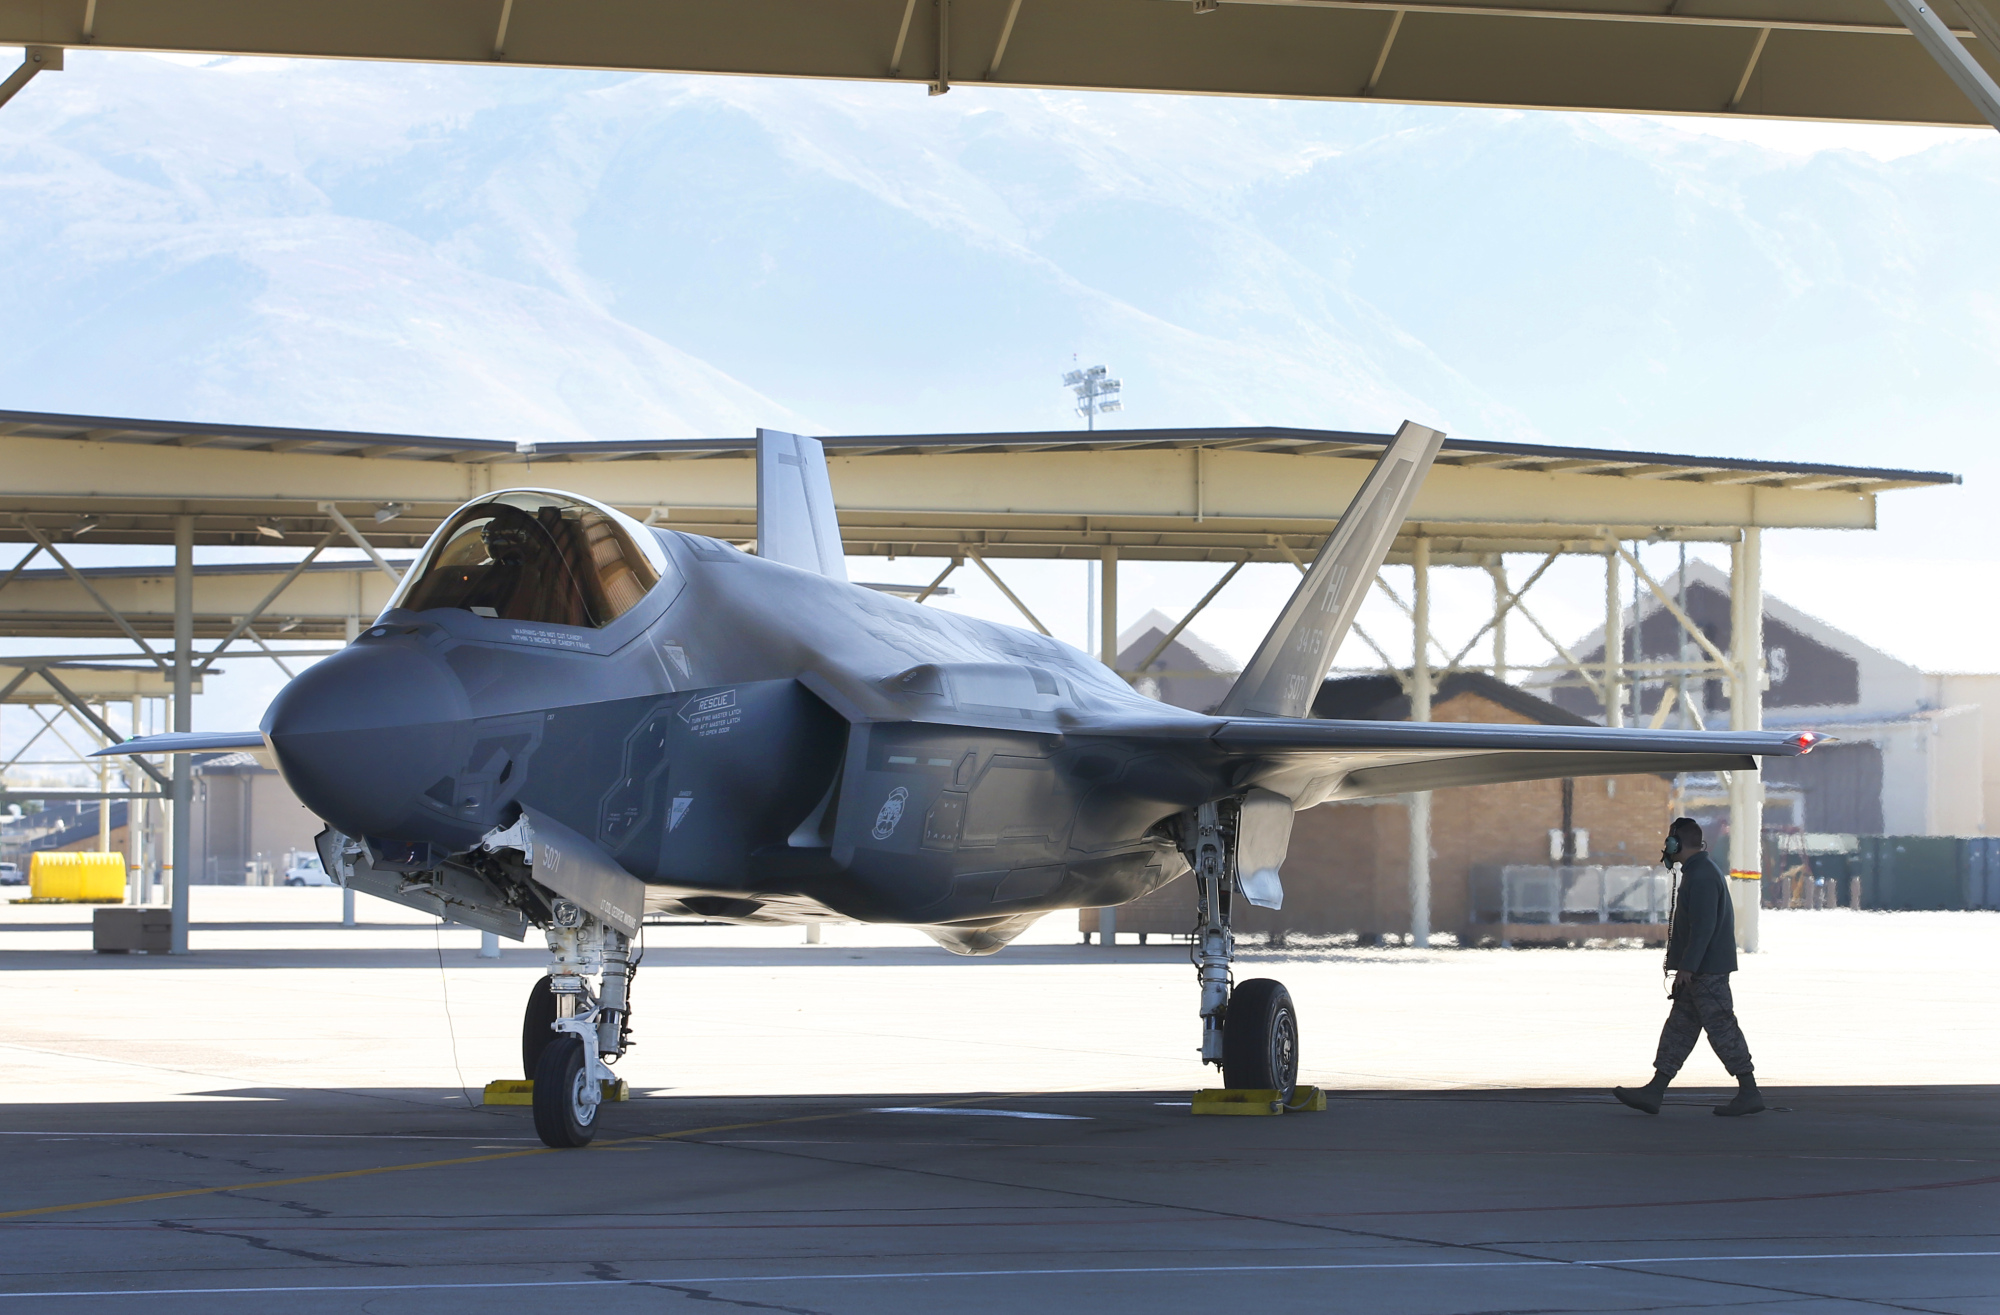 F-35 Role for Turkey Is at Risk on Russia Arms Deal, U S